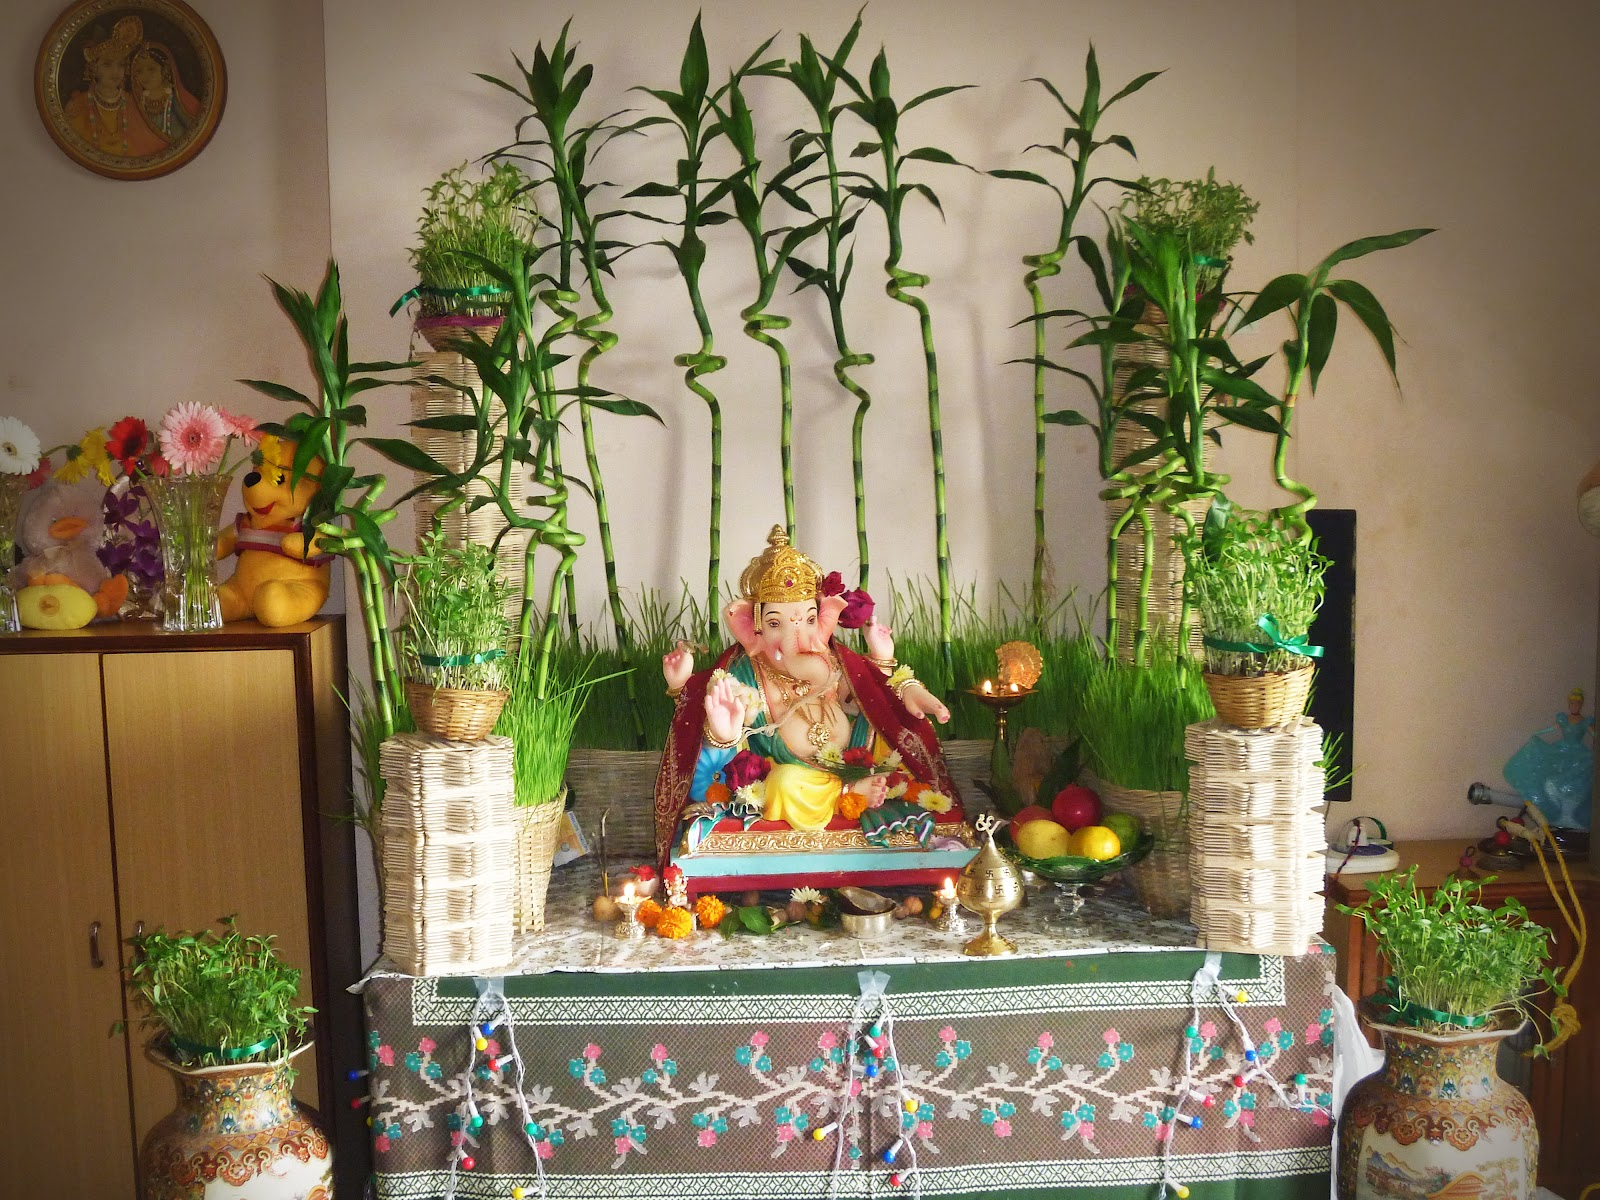 5 Simple Home Decor Ideas for Ganesh Chaturthi By Monica ...